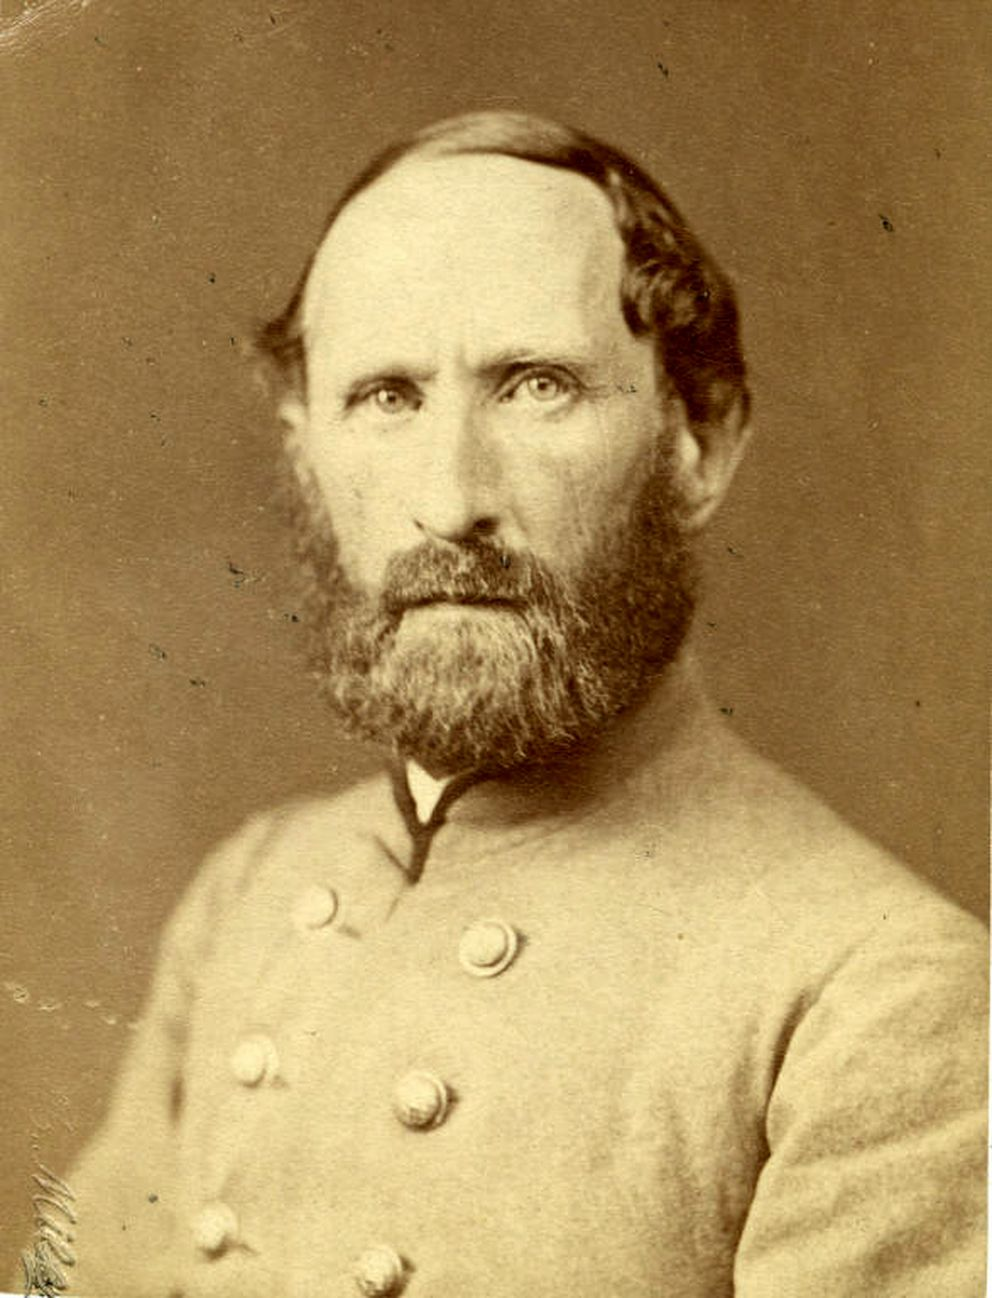 Virginia Military Institute surgeon Robert L. Madison in 1870. Madison was James Madison's favorite nephew, and had lived for a time in the White House when his uncle was president. (Virginia Military Institute Archives)